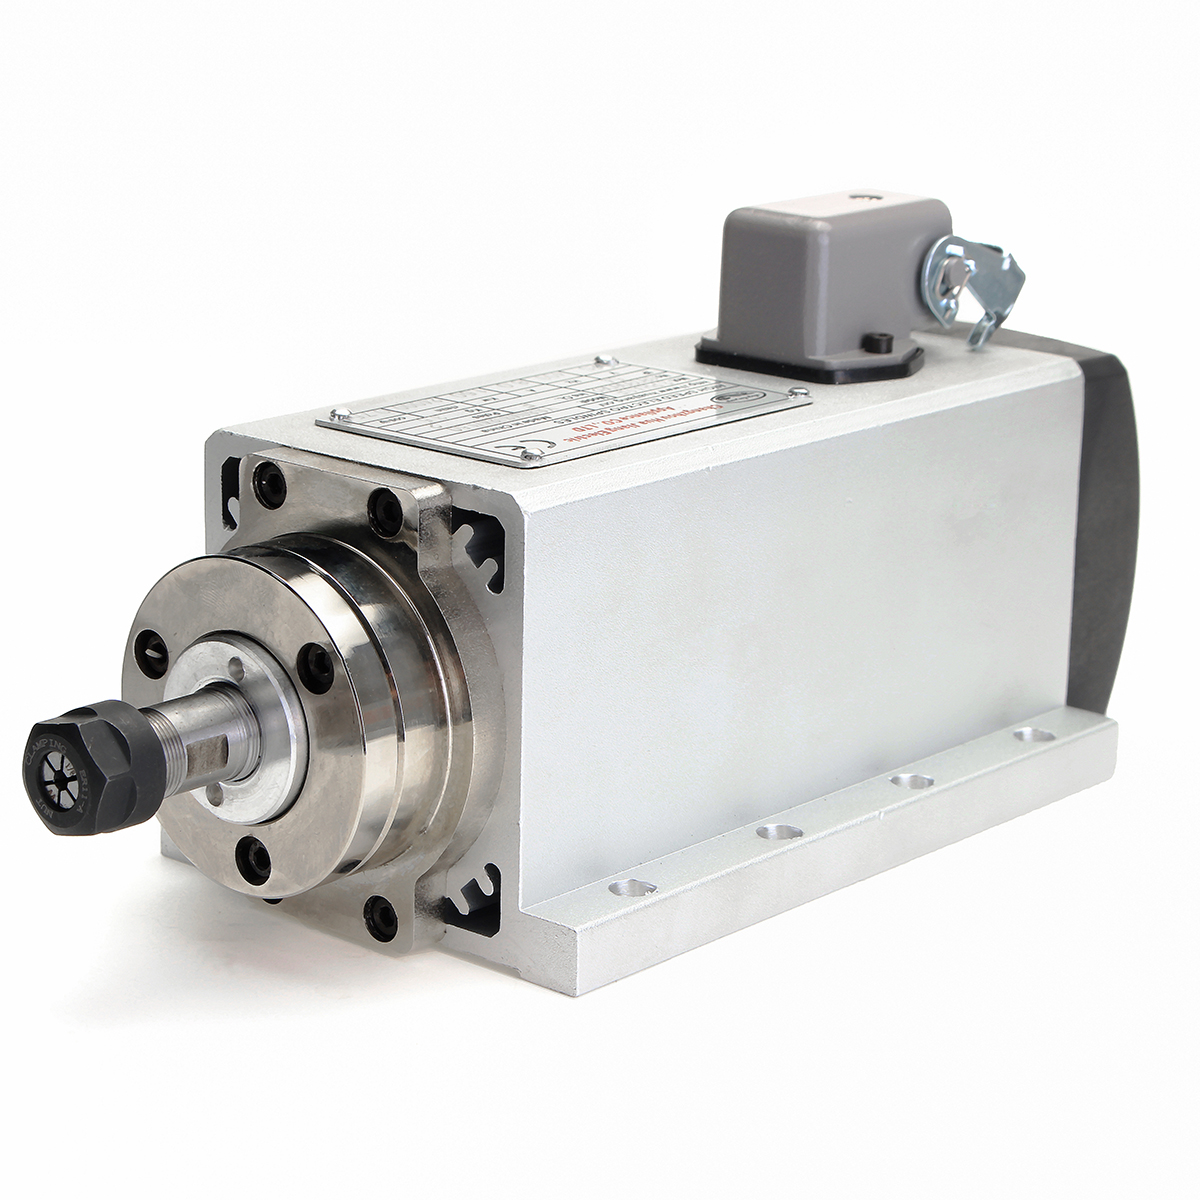 1Pcs 1500W 1.5KW Air Cooled CNC Spindle Motor Woodworking Engraving Machine Principal Axis DIY Power Tool Parts